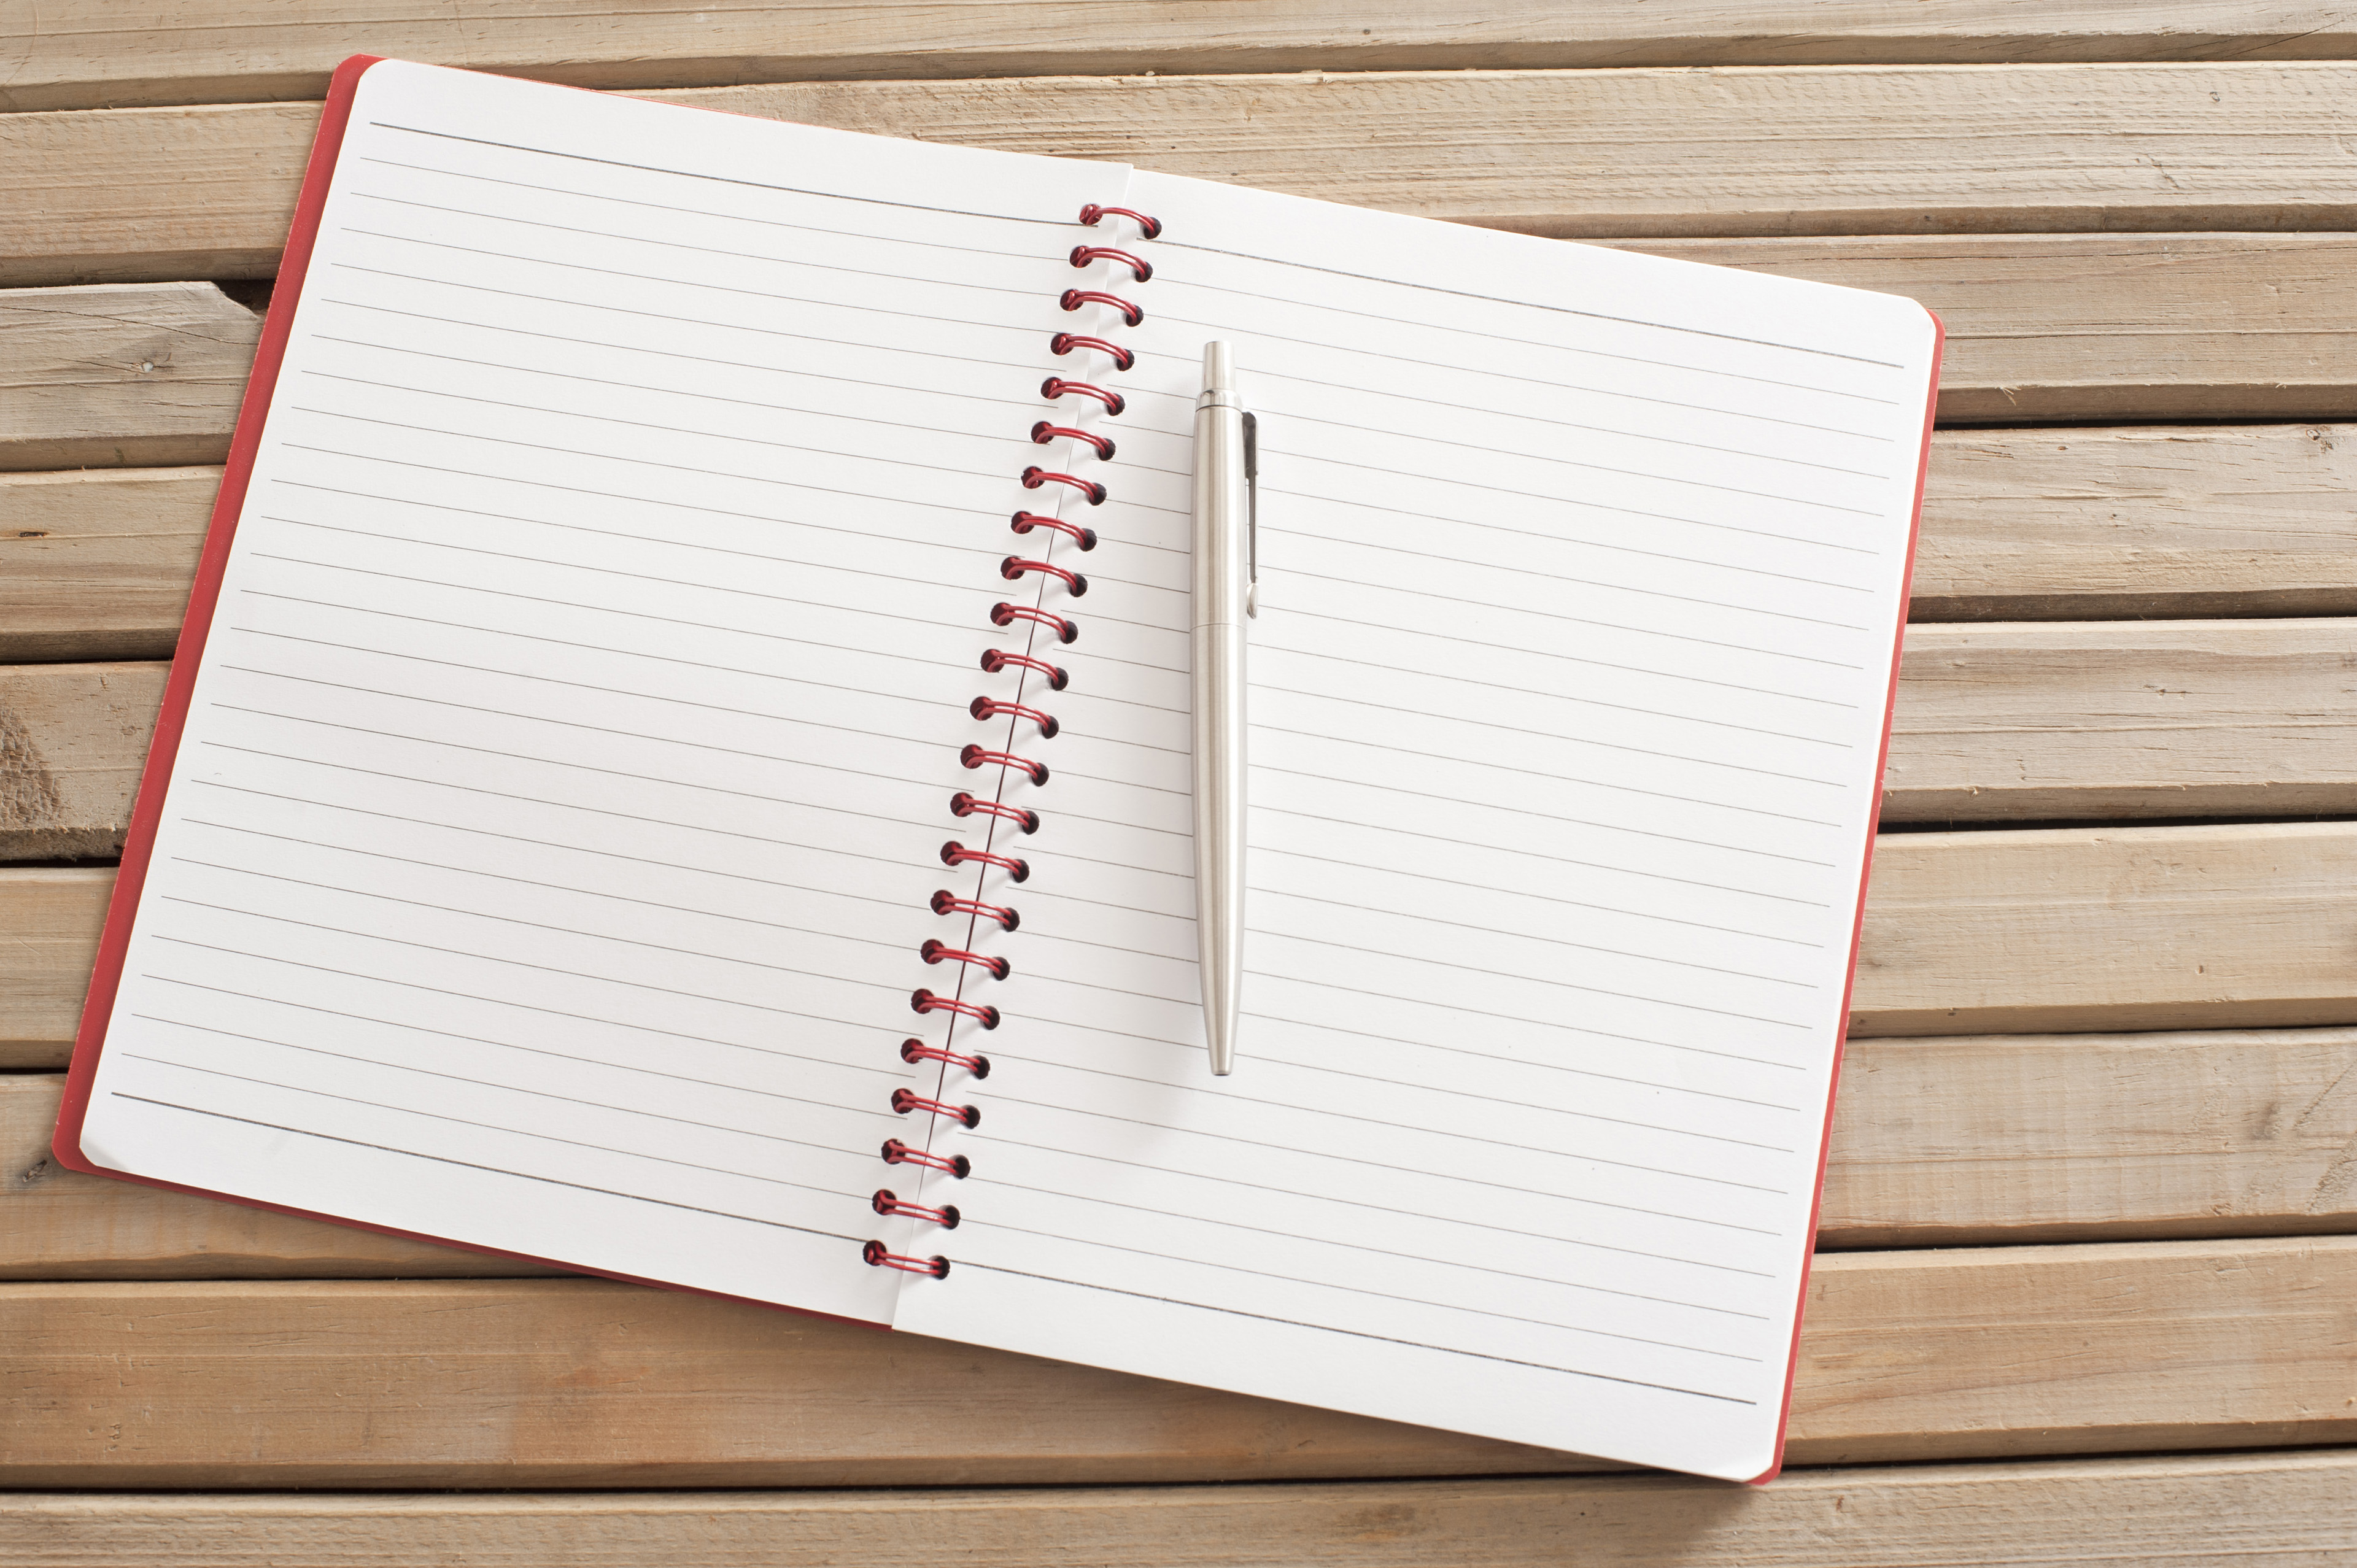 Image Of Open Blank Notebook With Pen On Wooden Table  Freebiephotography